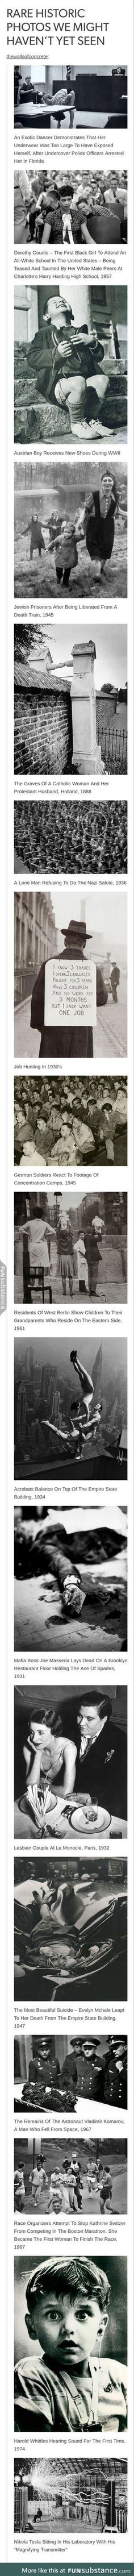 incredibly striking historical photos p. Look in the background